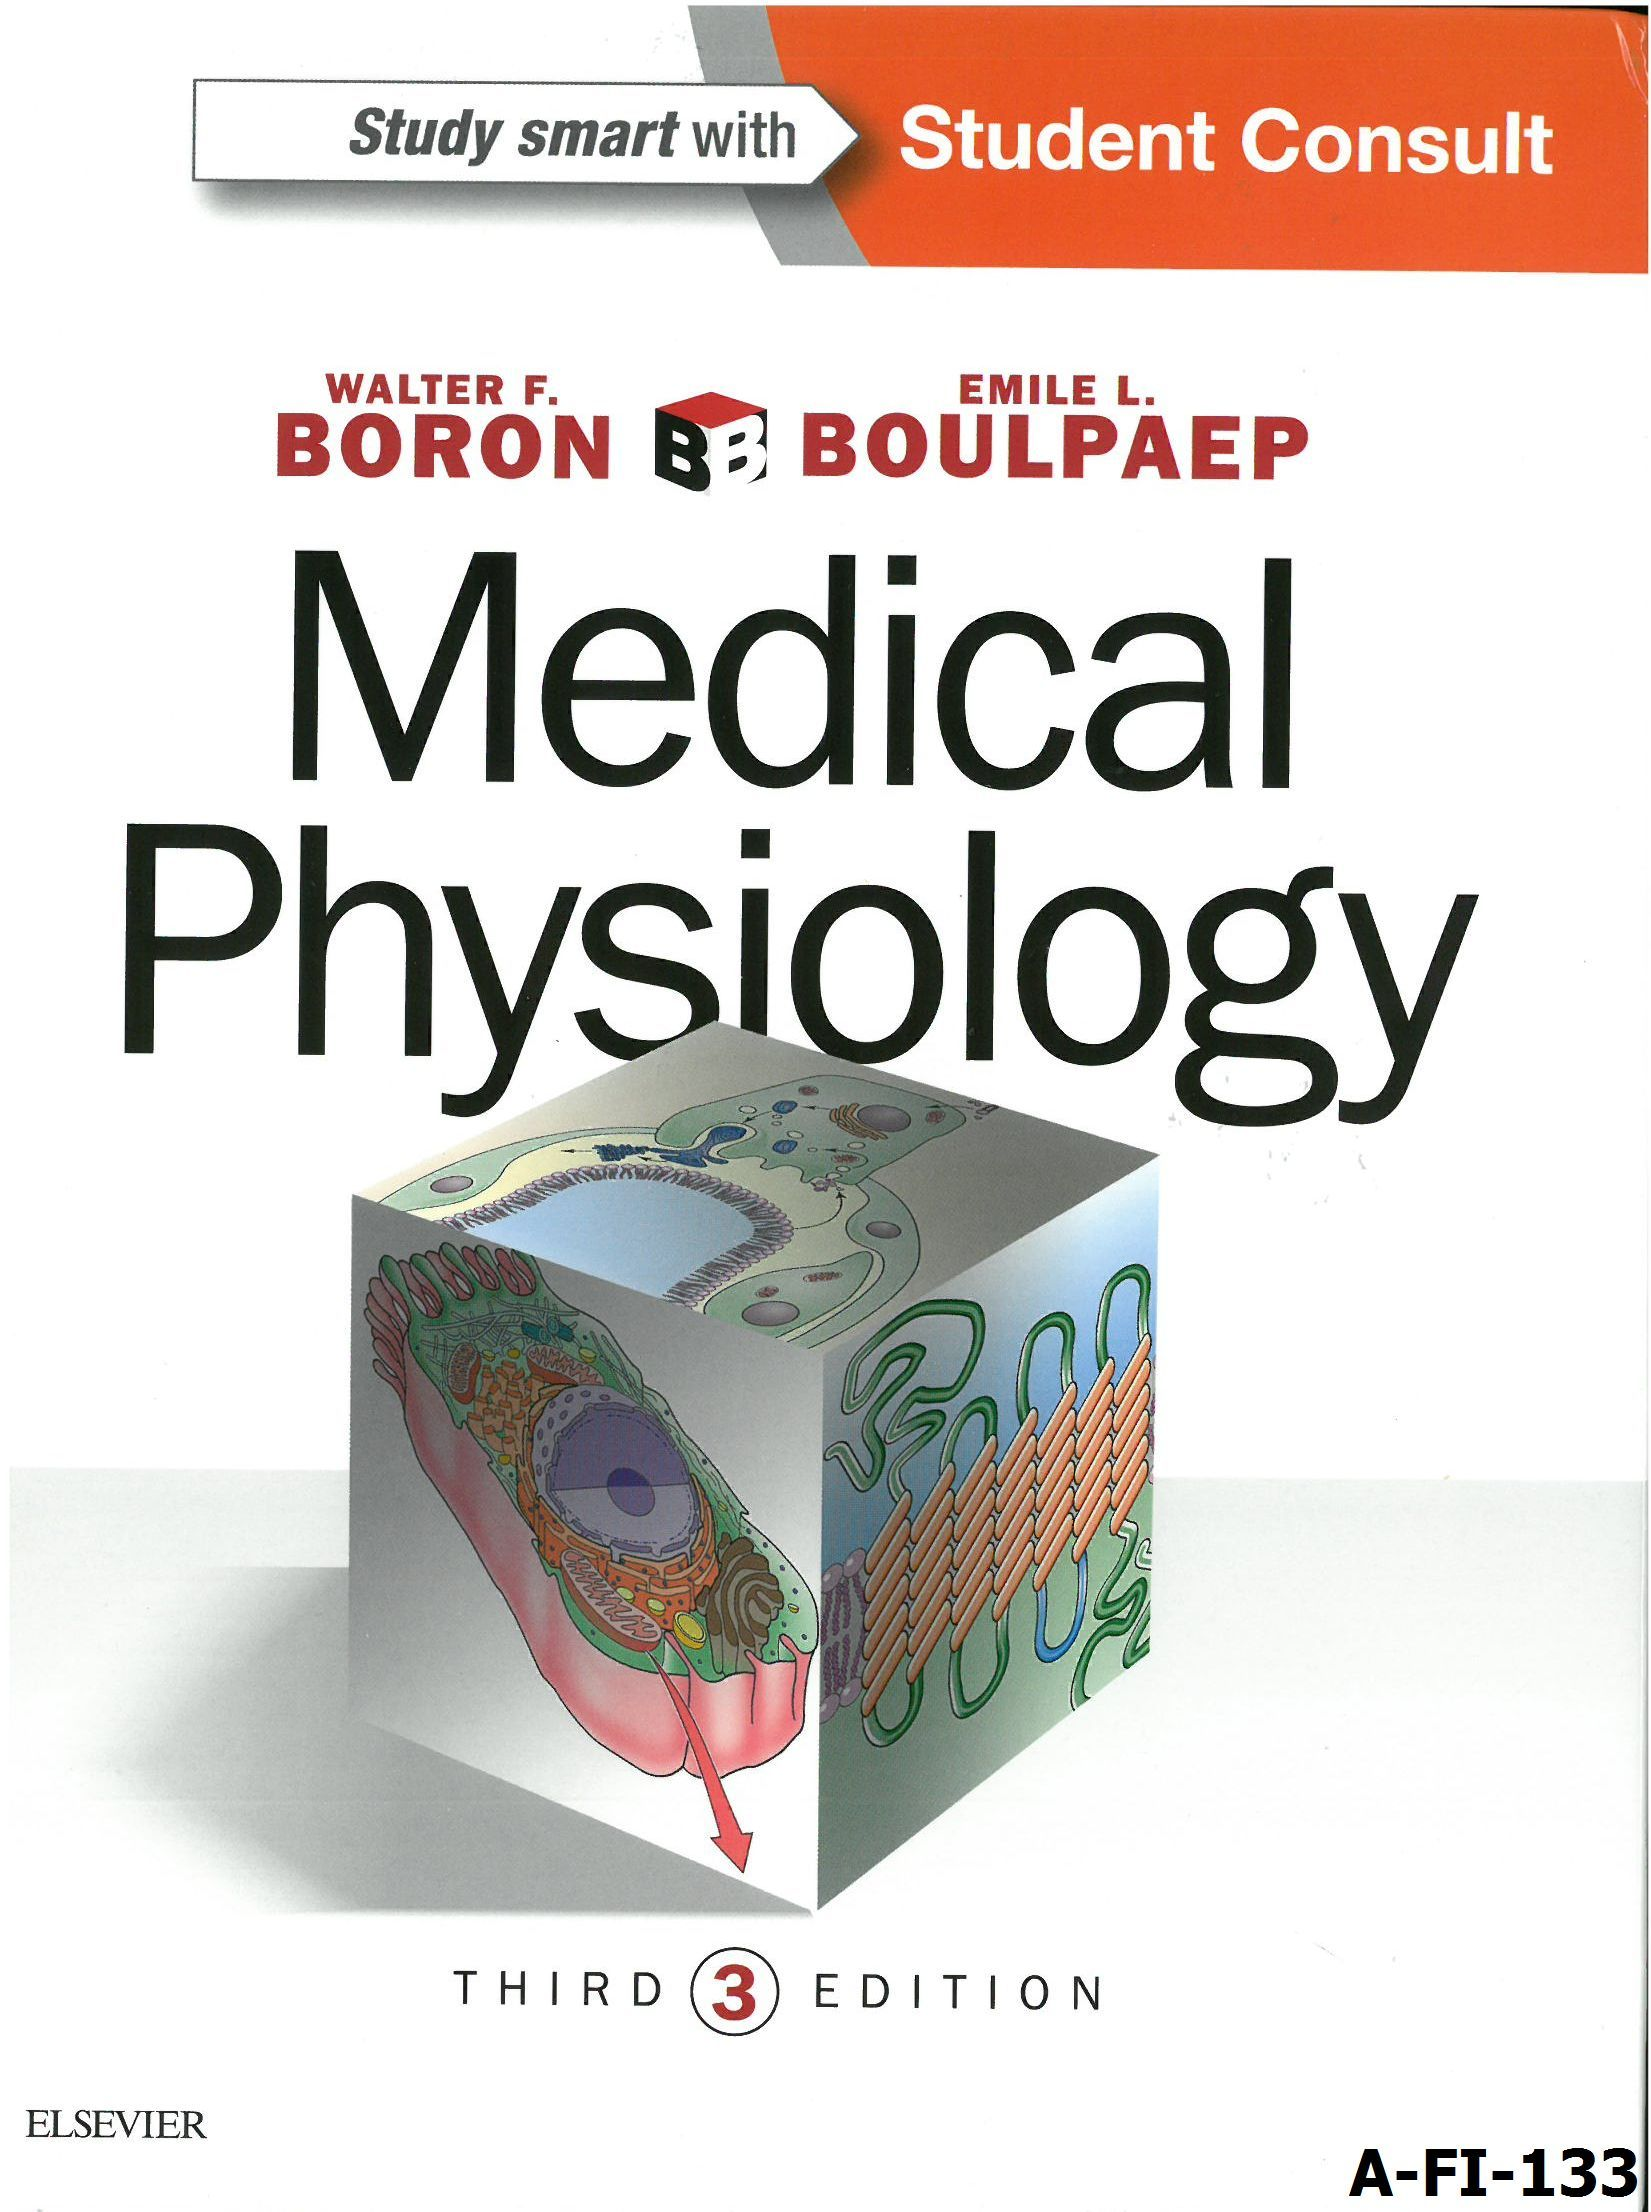 Medical physiology / [edited by] Walter F. Boron, Emile L. Boulpaep ...